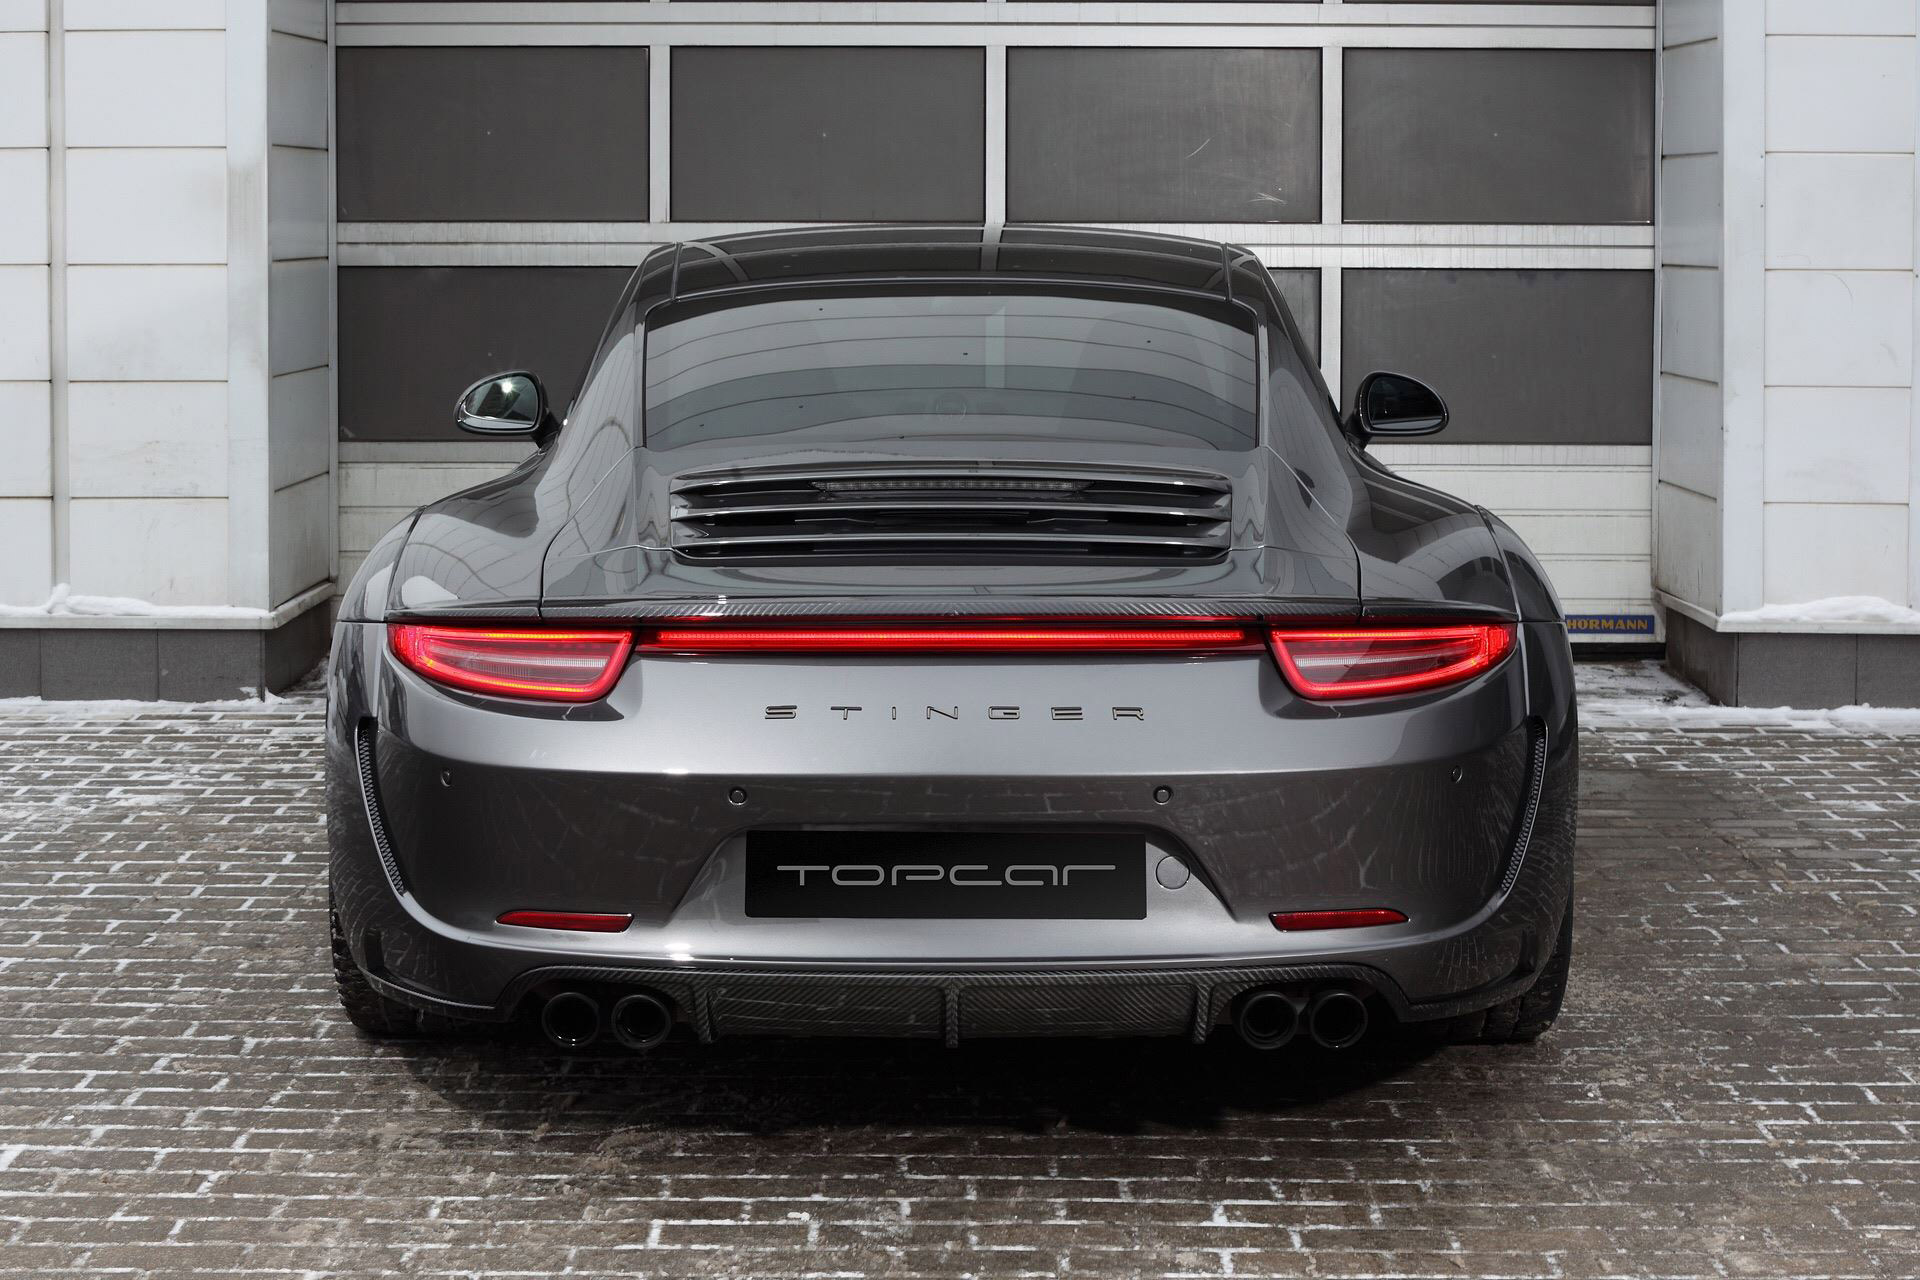 porsche 991 carrera 4s with stinger body kit by topcar. Black Bedroom Furniture Sets. Home Design Ideas